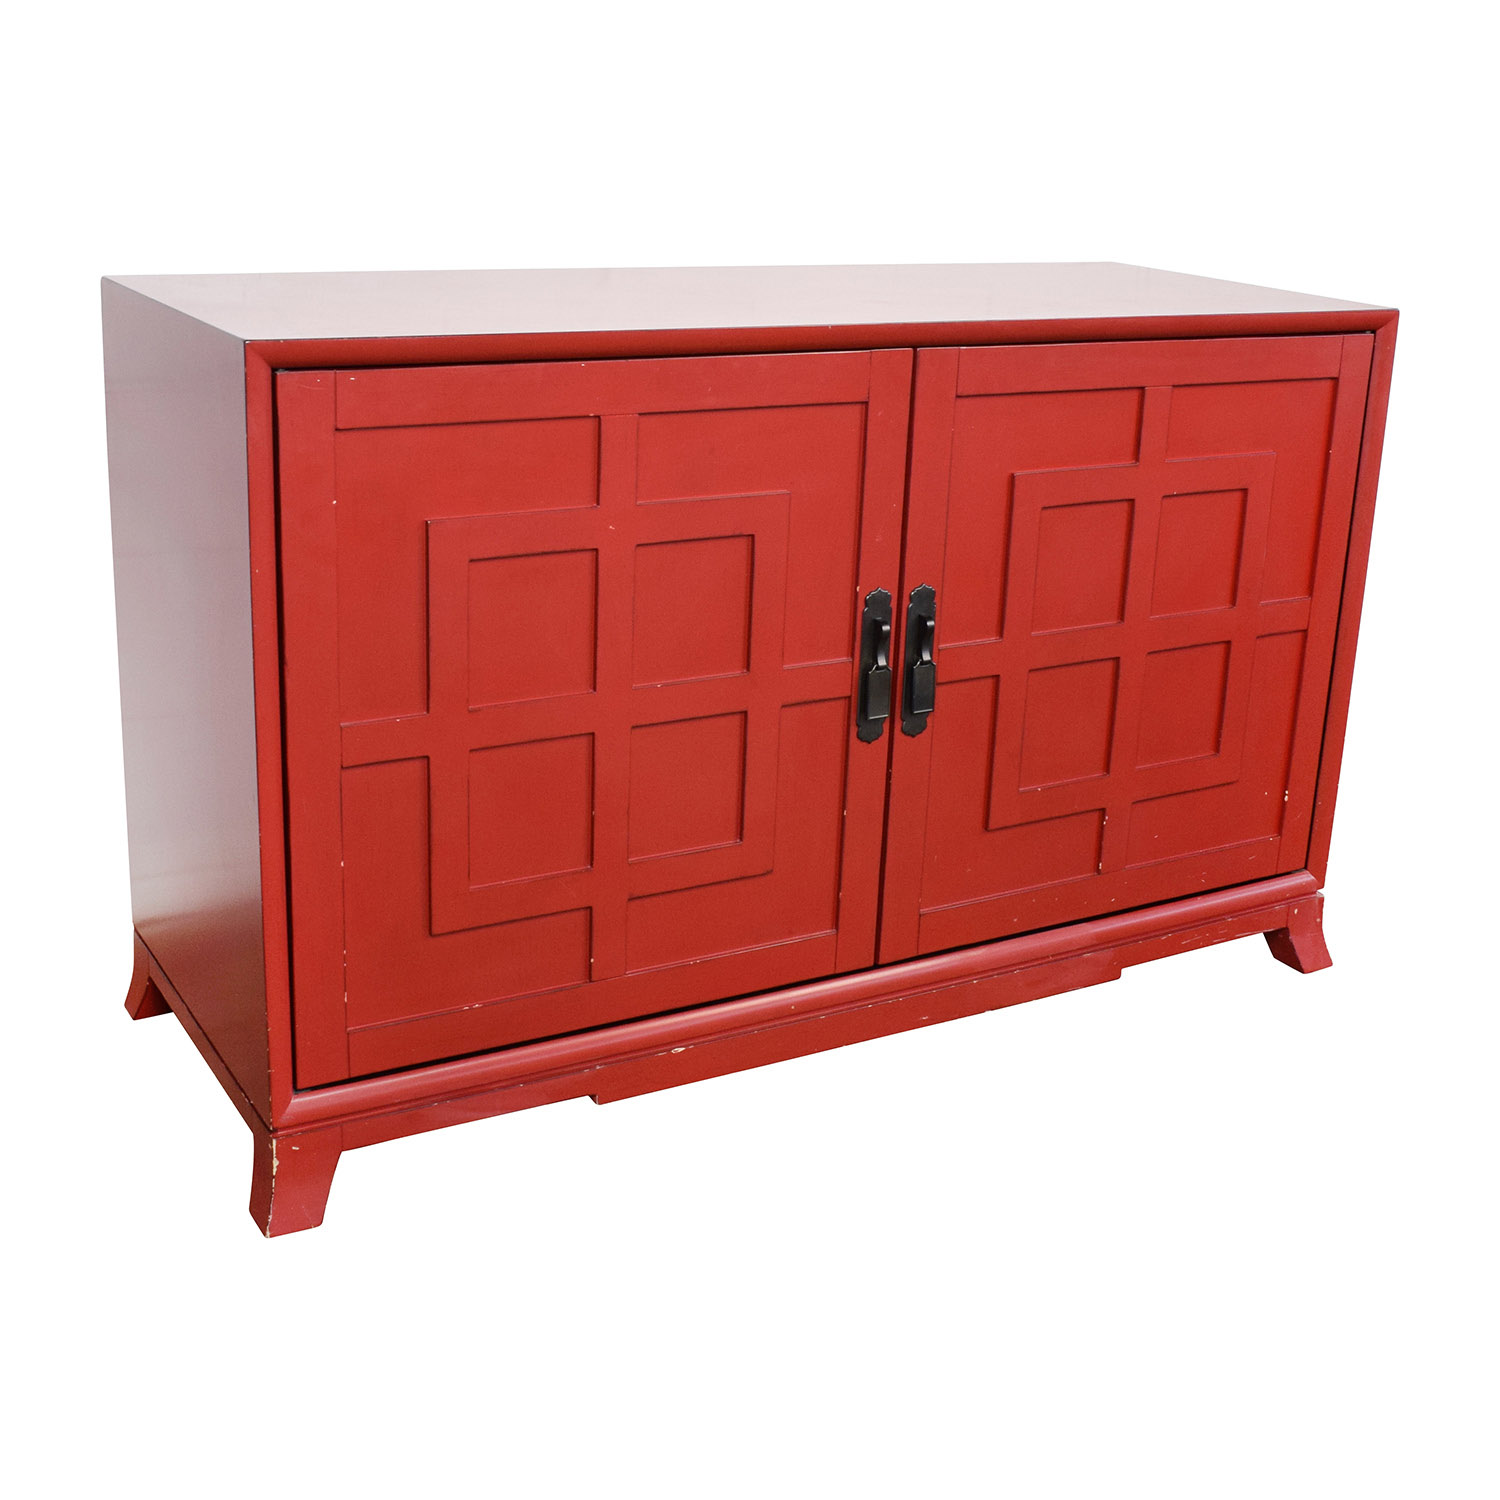 Crate and Barrel Crate & Barrel Red Media Storage coupon